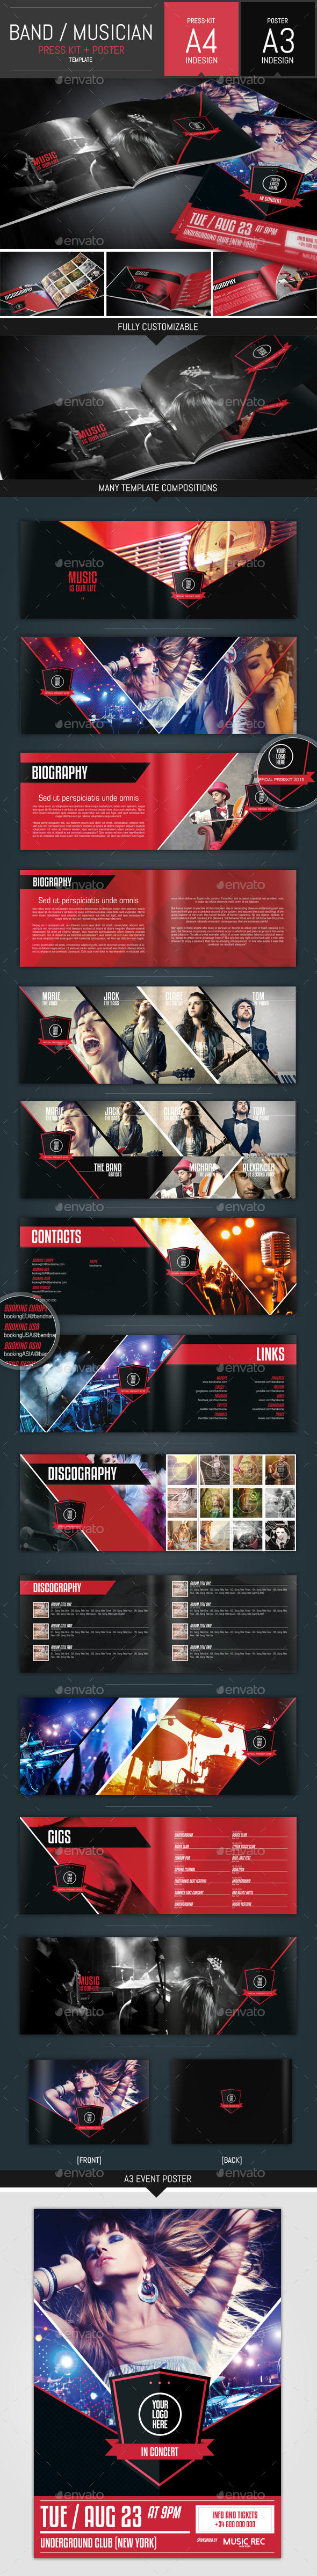 Music Band Pack: Presskit + Poster Template - Resumes Stationery